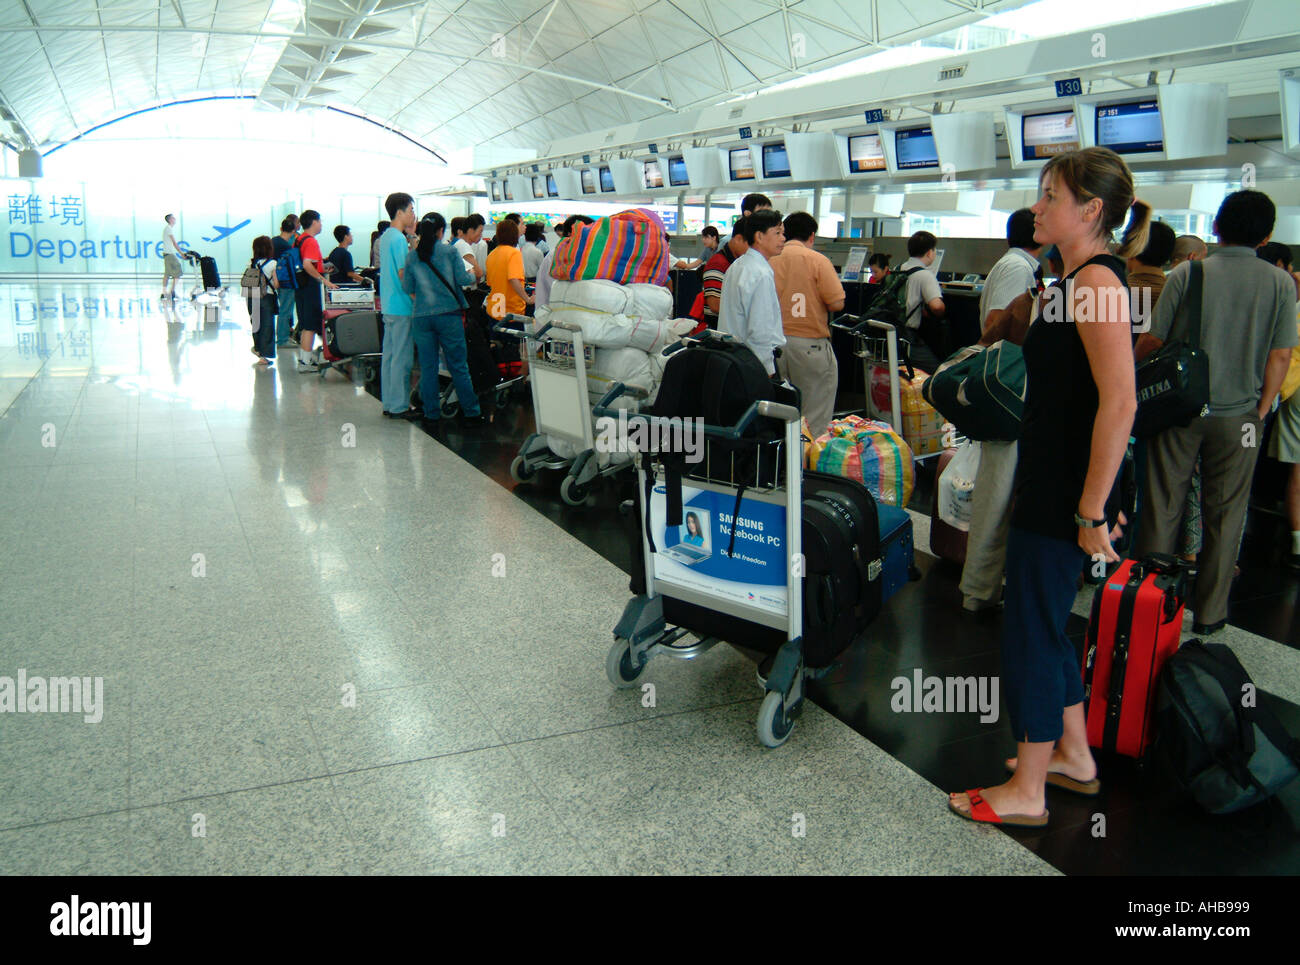 Hong Kong International Airport Chek Lap Kok check in desk - Stock Image